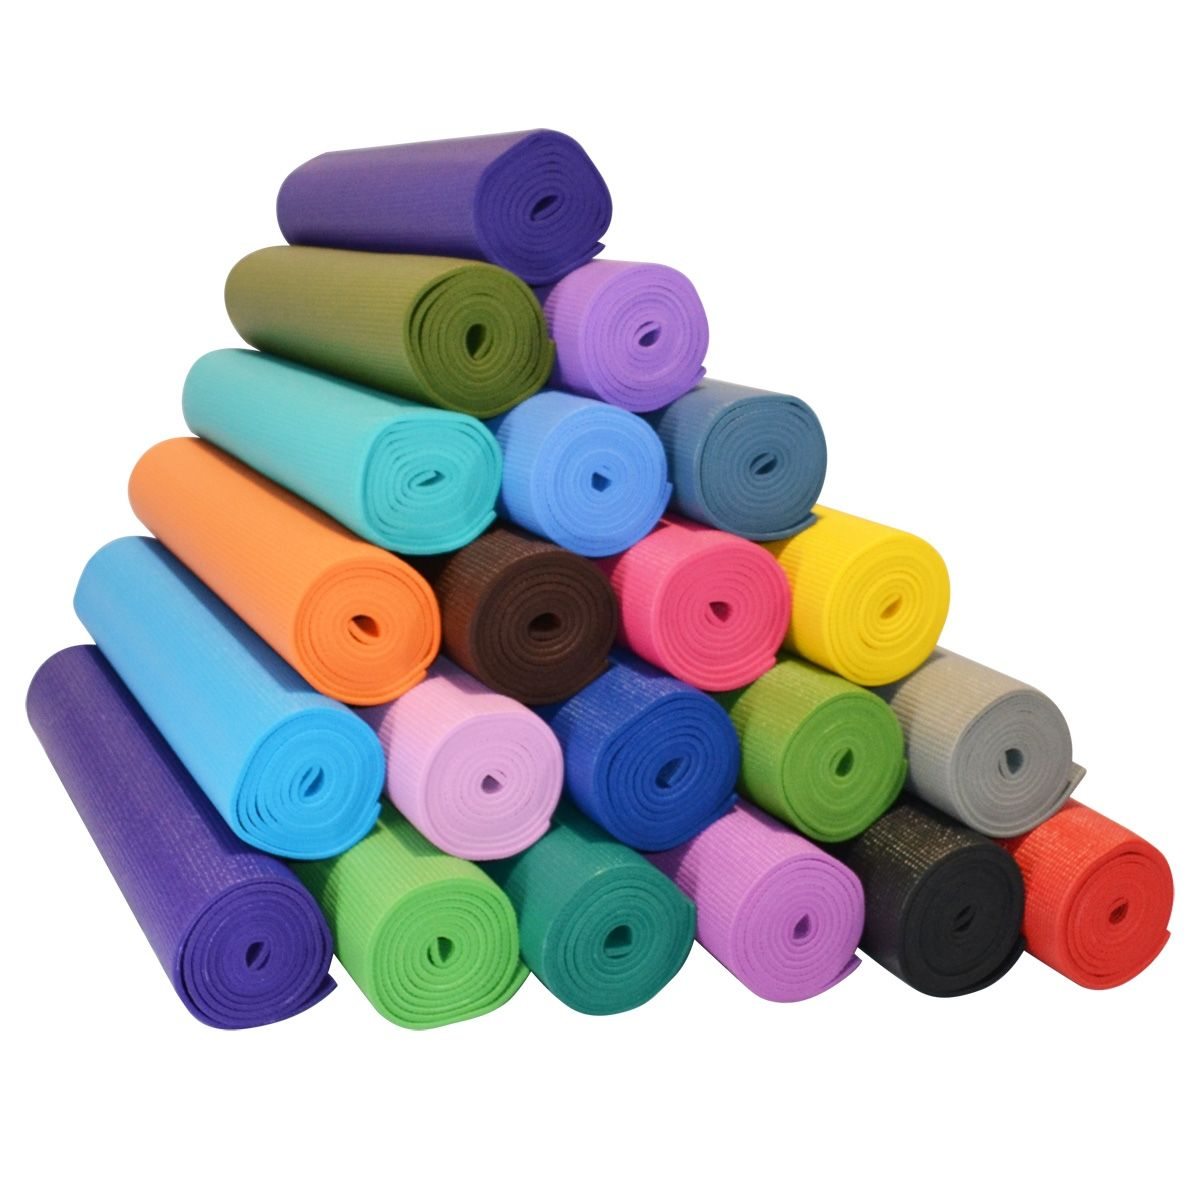 Yoga Accessories 1 4 Extra Thick Deluxe Yoga Mat Yoga Accessories Bikram Yoga Best Yoga